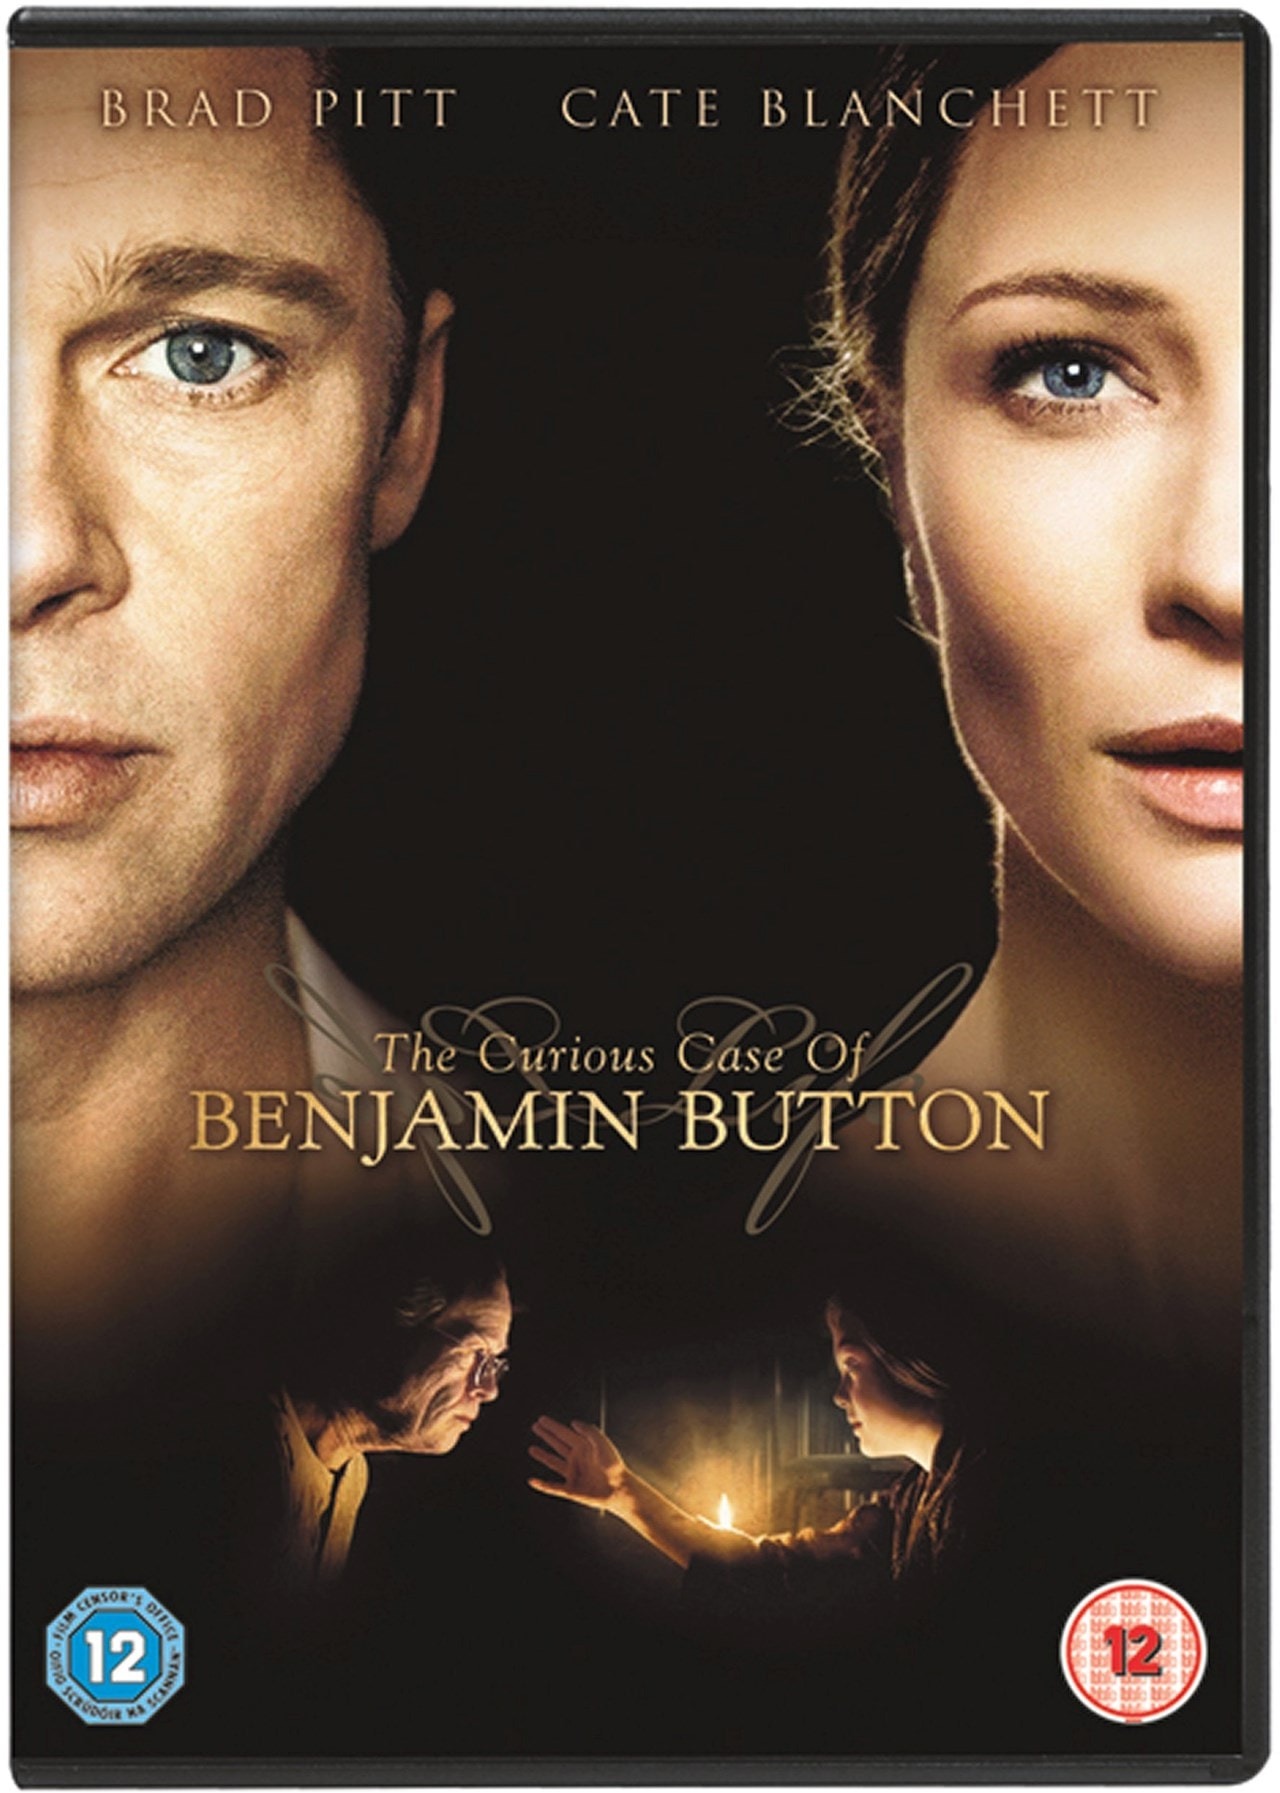 The Curious Case of Benjamin Button - 1